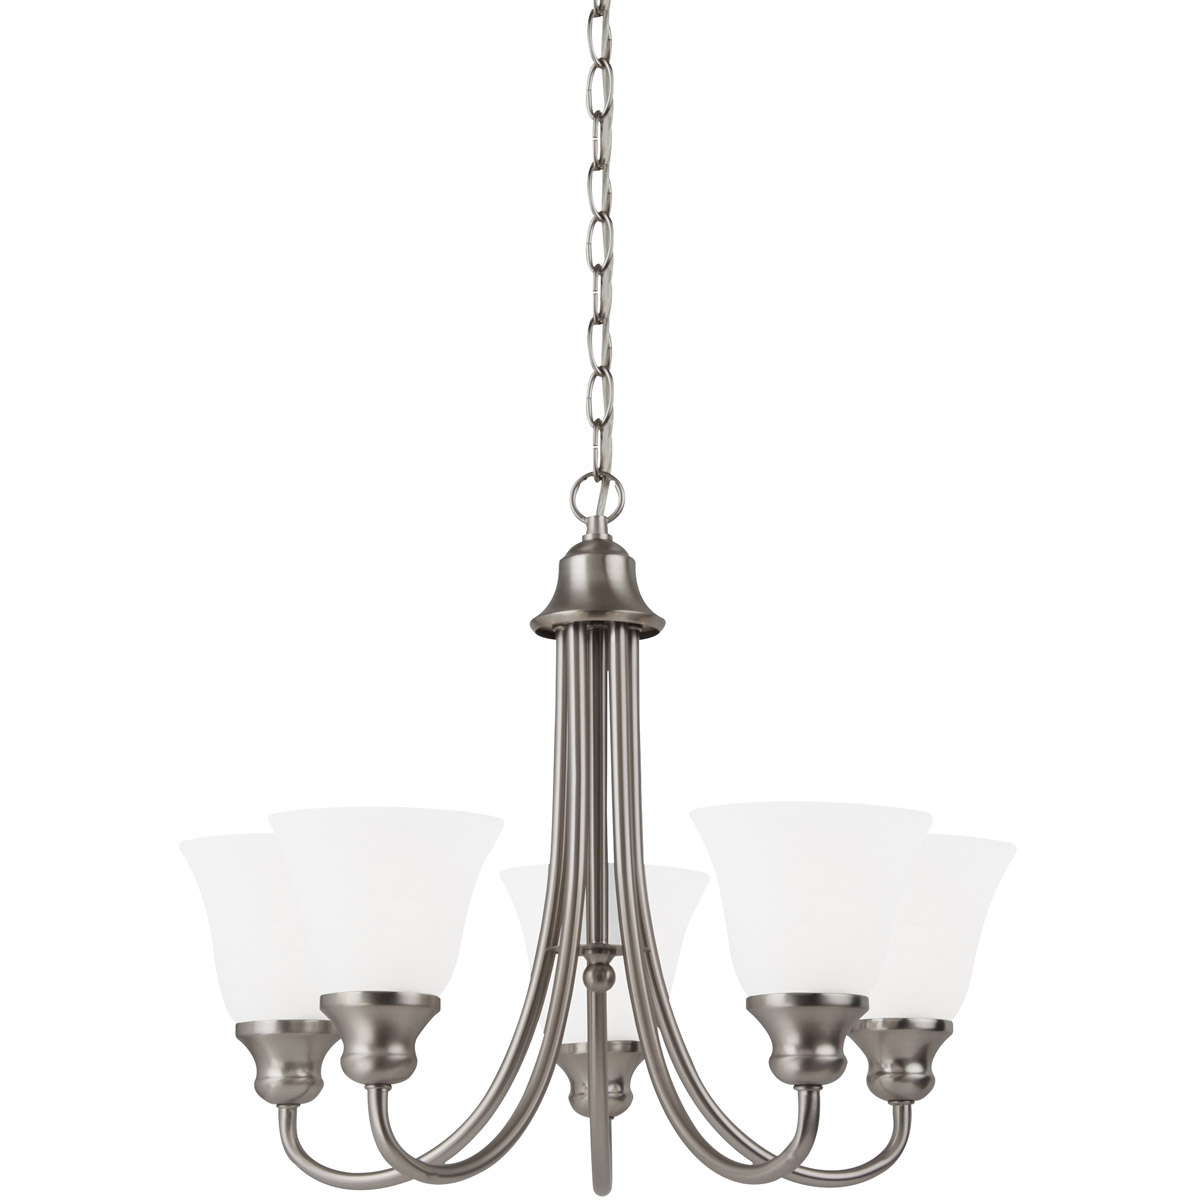 Sea Gull Lighting Windgate 5 Light Chandelier in Brushed Nickel 35940-962 photo